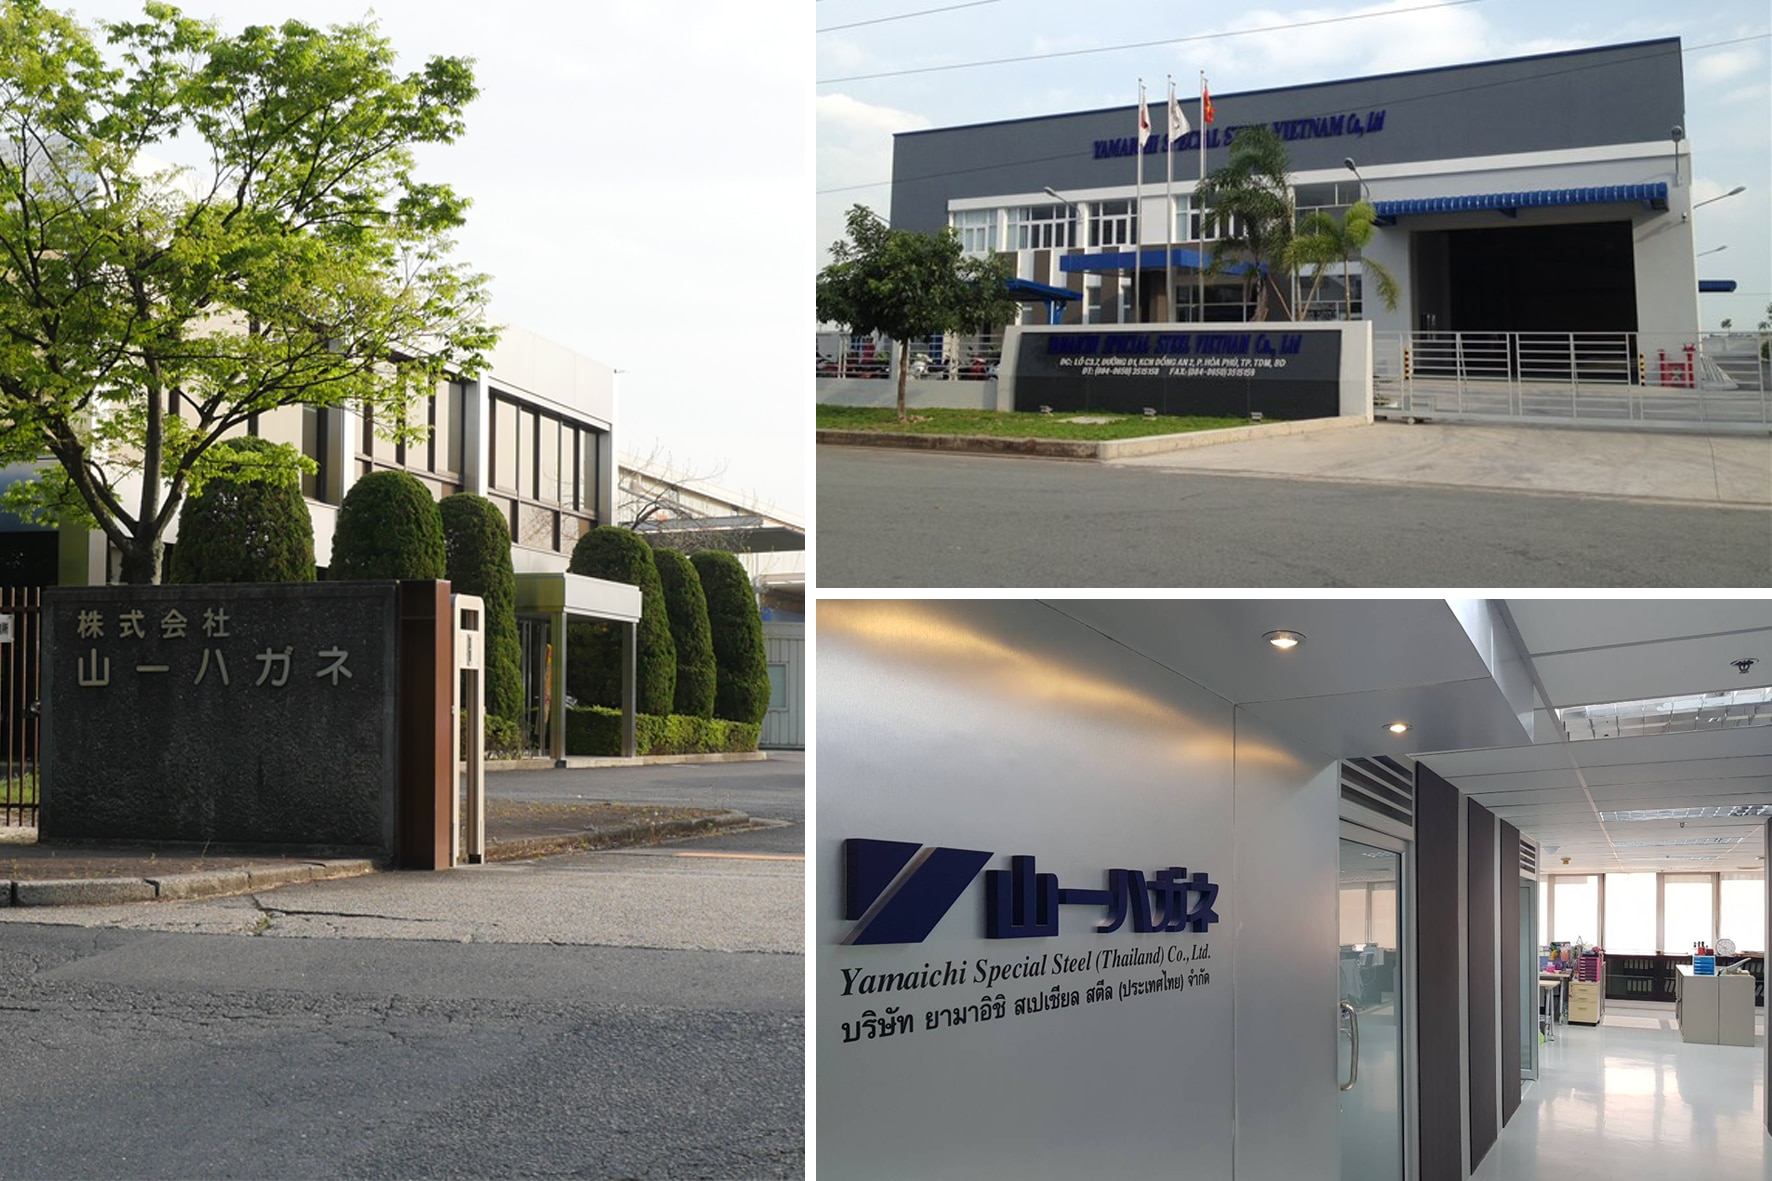 YAMAICHI SPECIAL STEEL, a partner with the same values